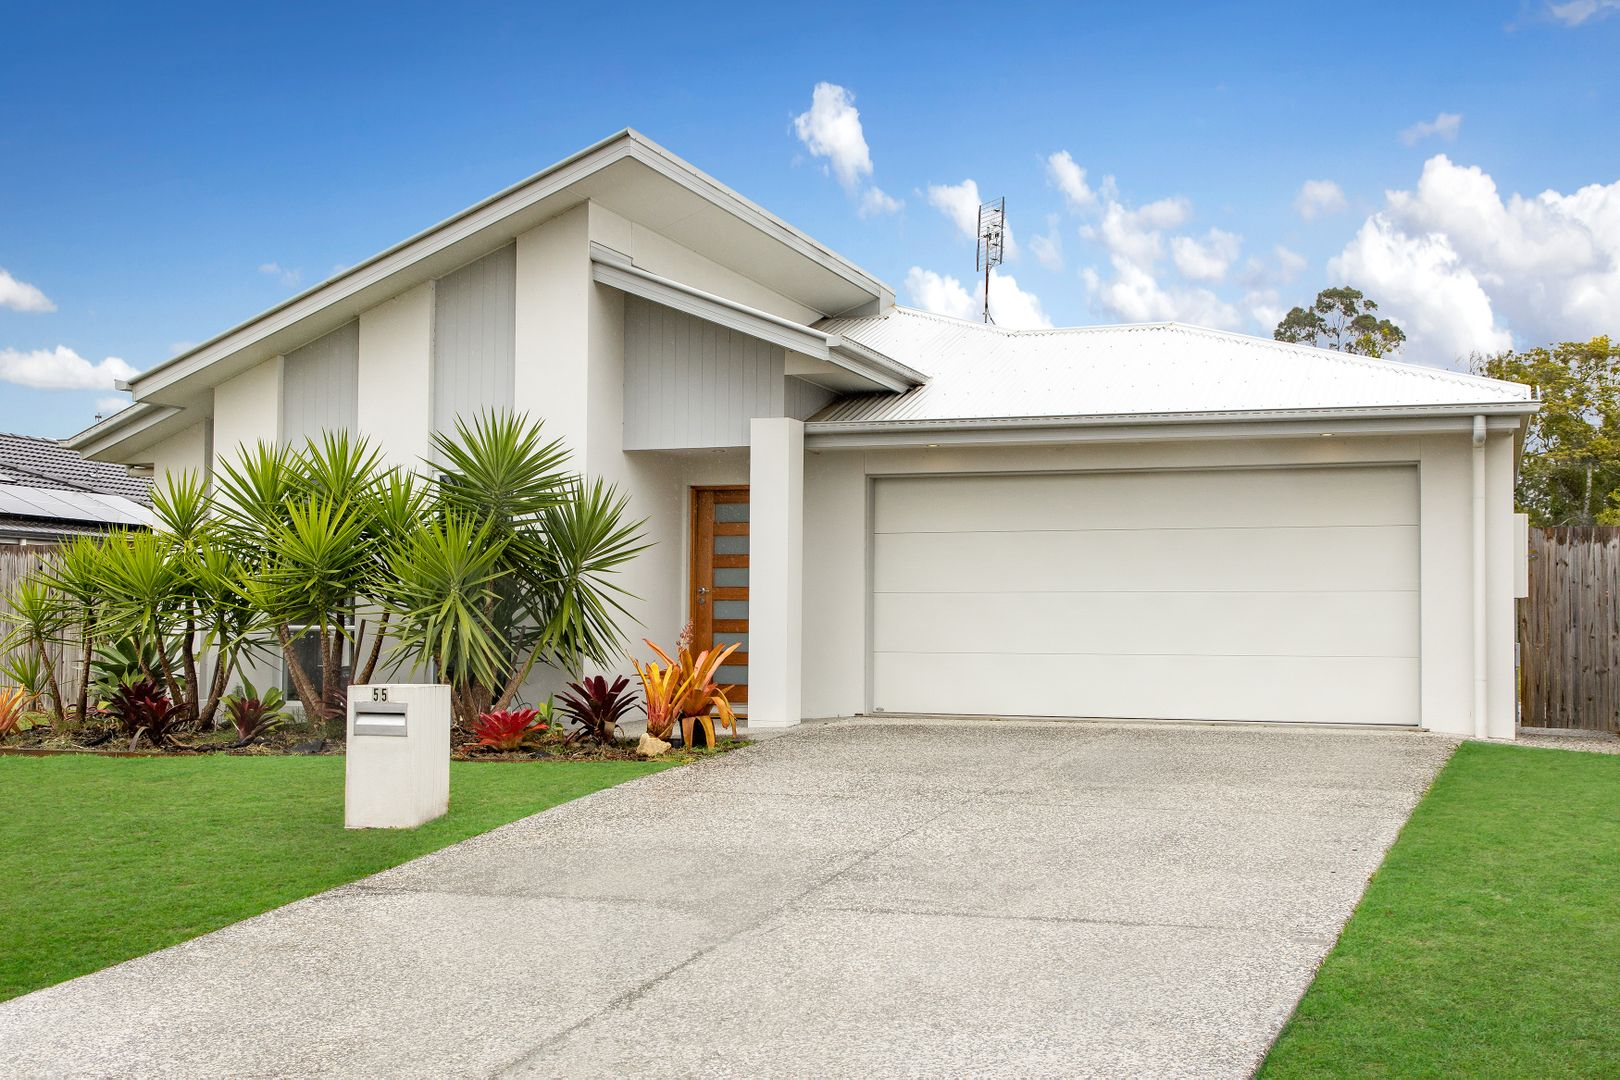 55 Straker Drive, Cooroy QLD 4563, Image 0